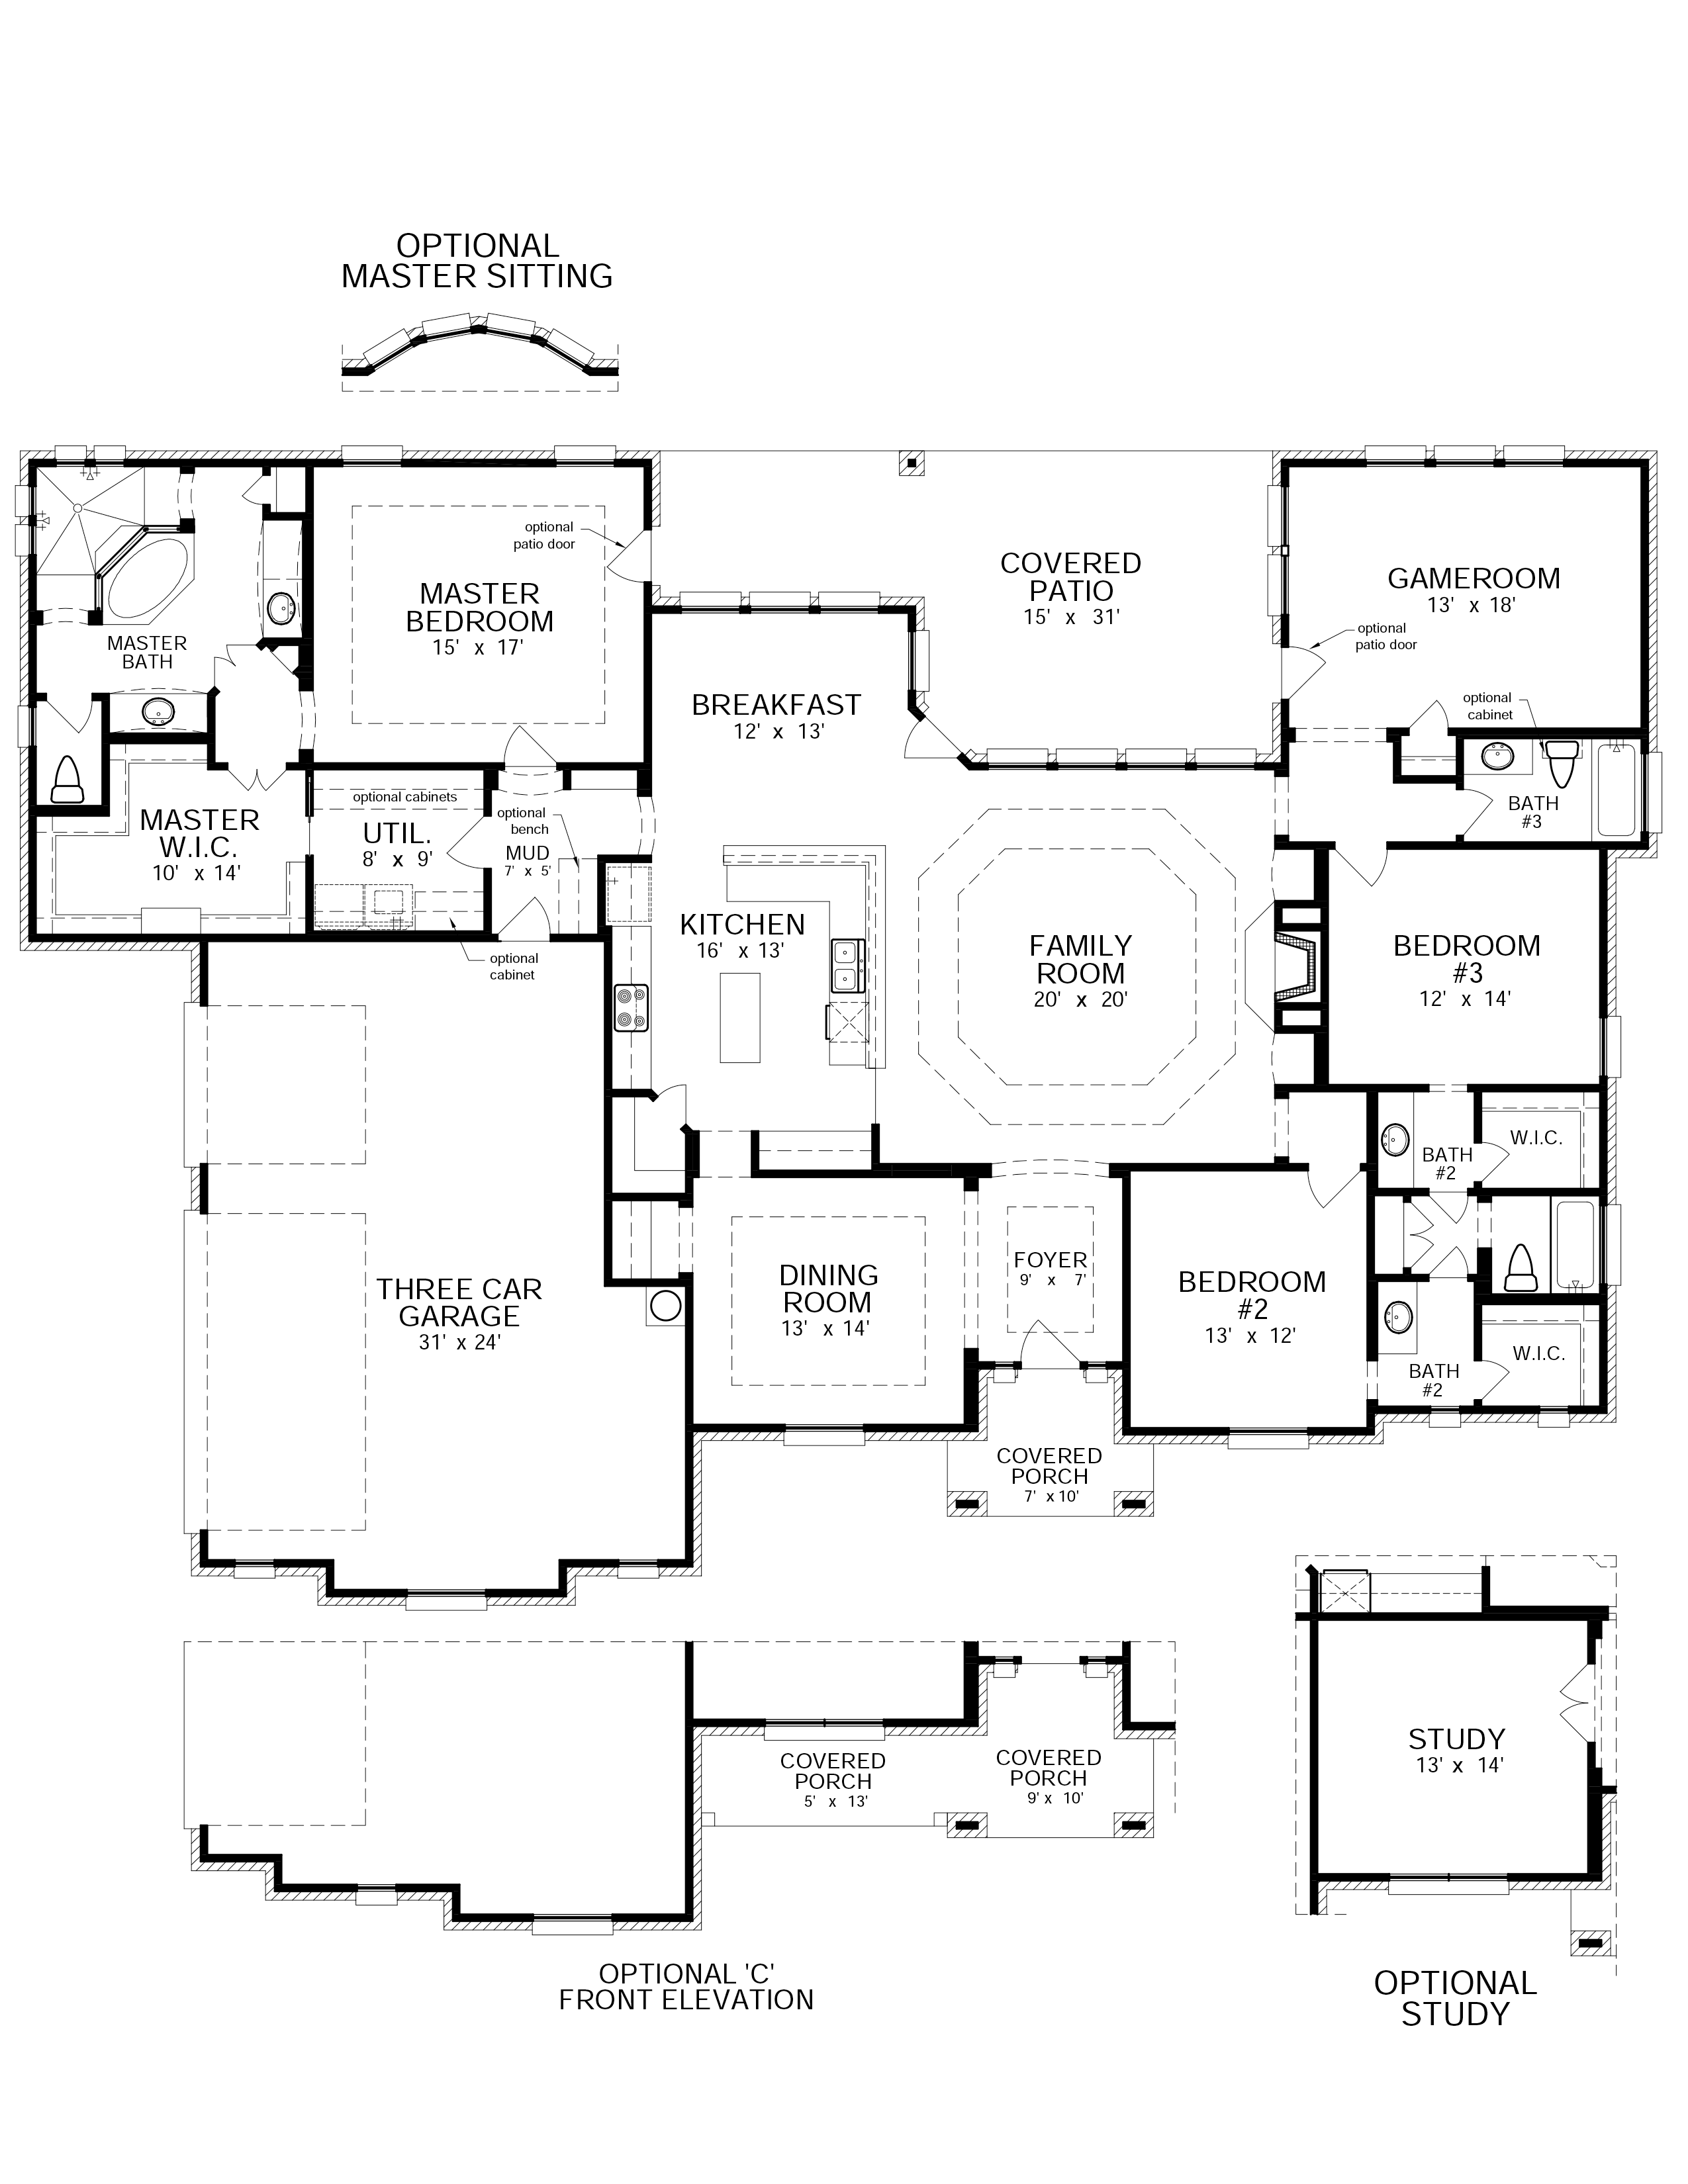 the pearl mcalpin manor new home floor plan midlothian texas new homes for sale midlothian tx mcalpin manor